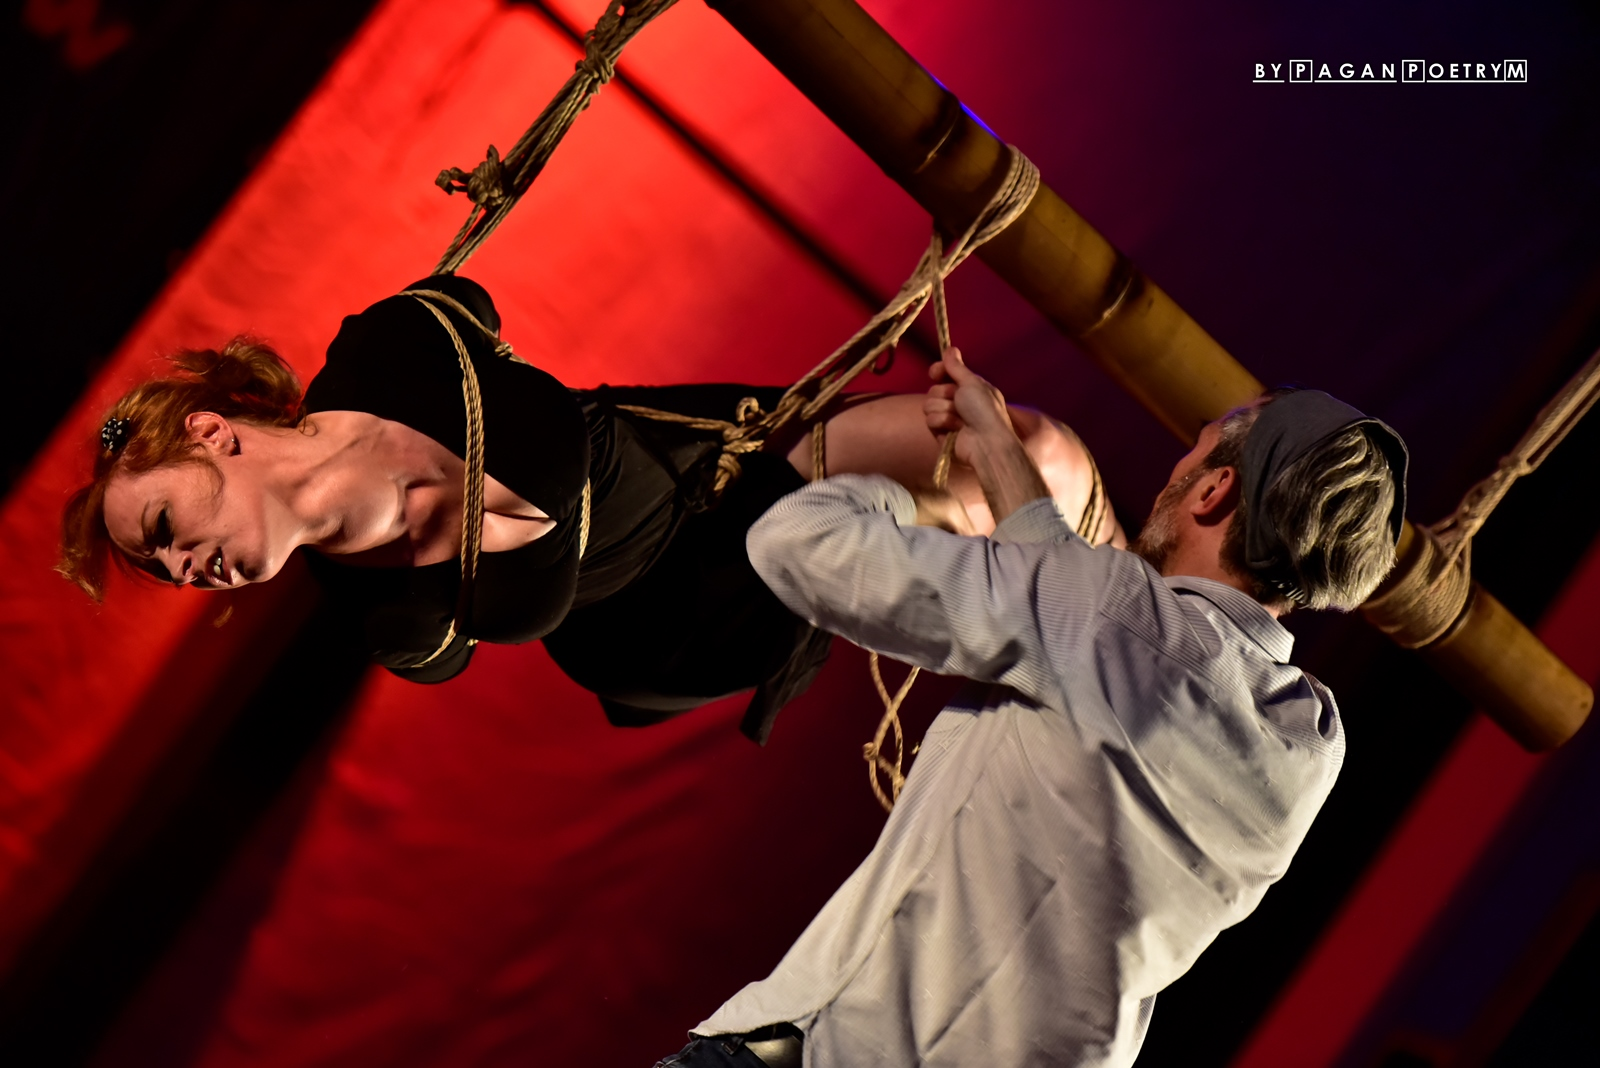 kinbaku Performance by Docvale